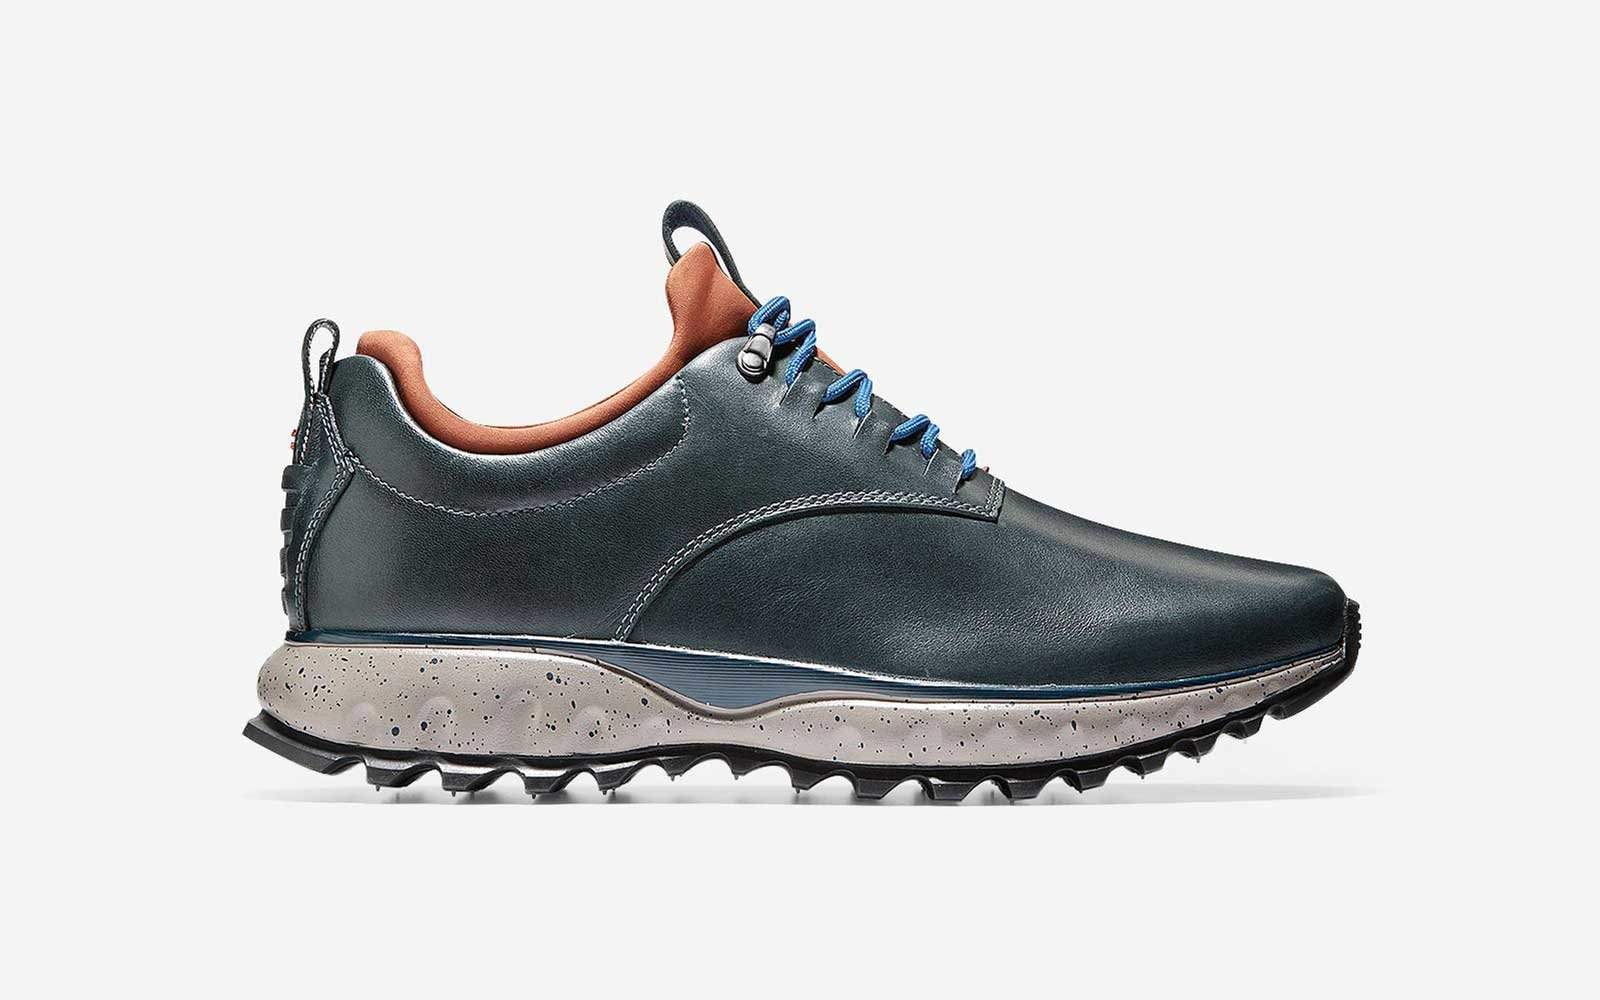 The Best Waterproof Walking Shoes for Men | Travel + Leisure